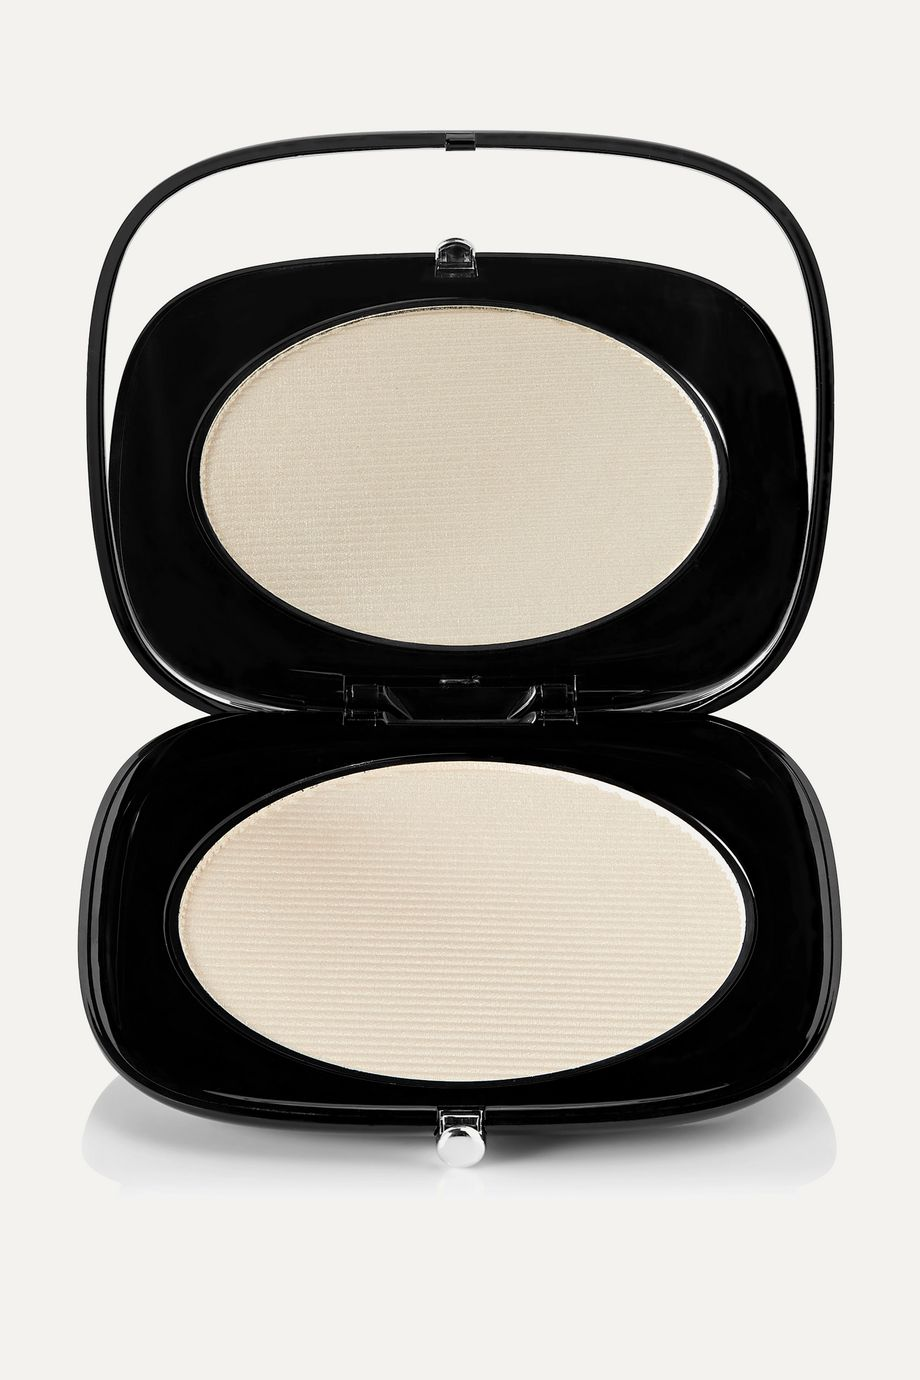 Marc Jacobs Beauty O!Mega Glaze All-Over Foil Luminizer - Wo!rth the Wait 80